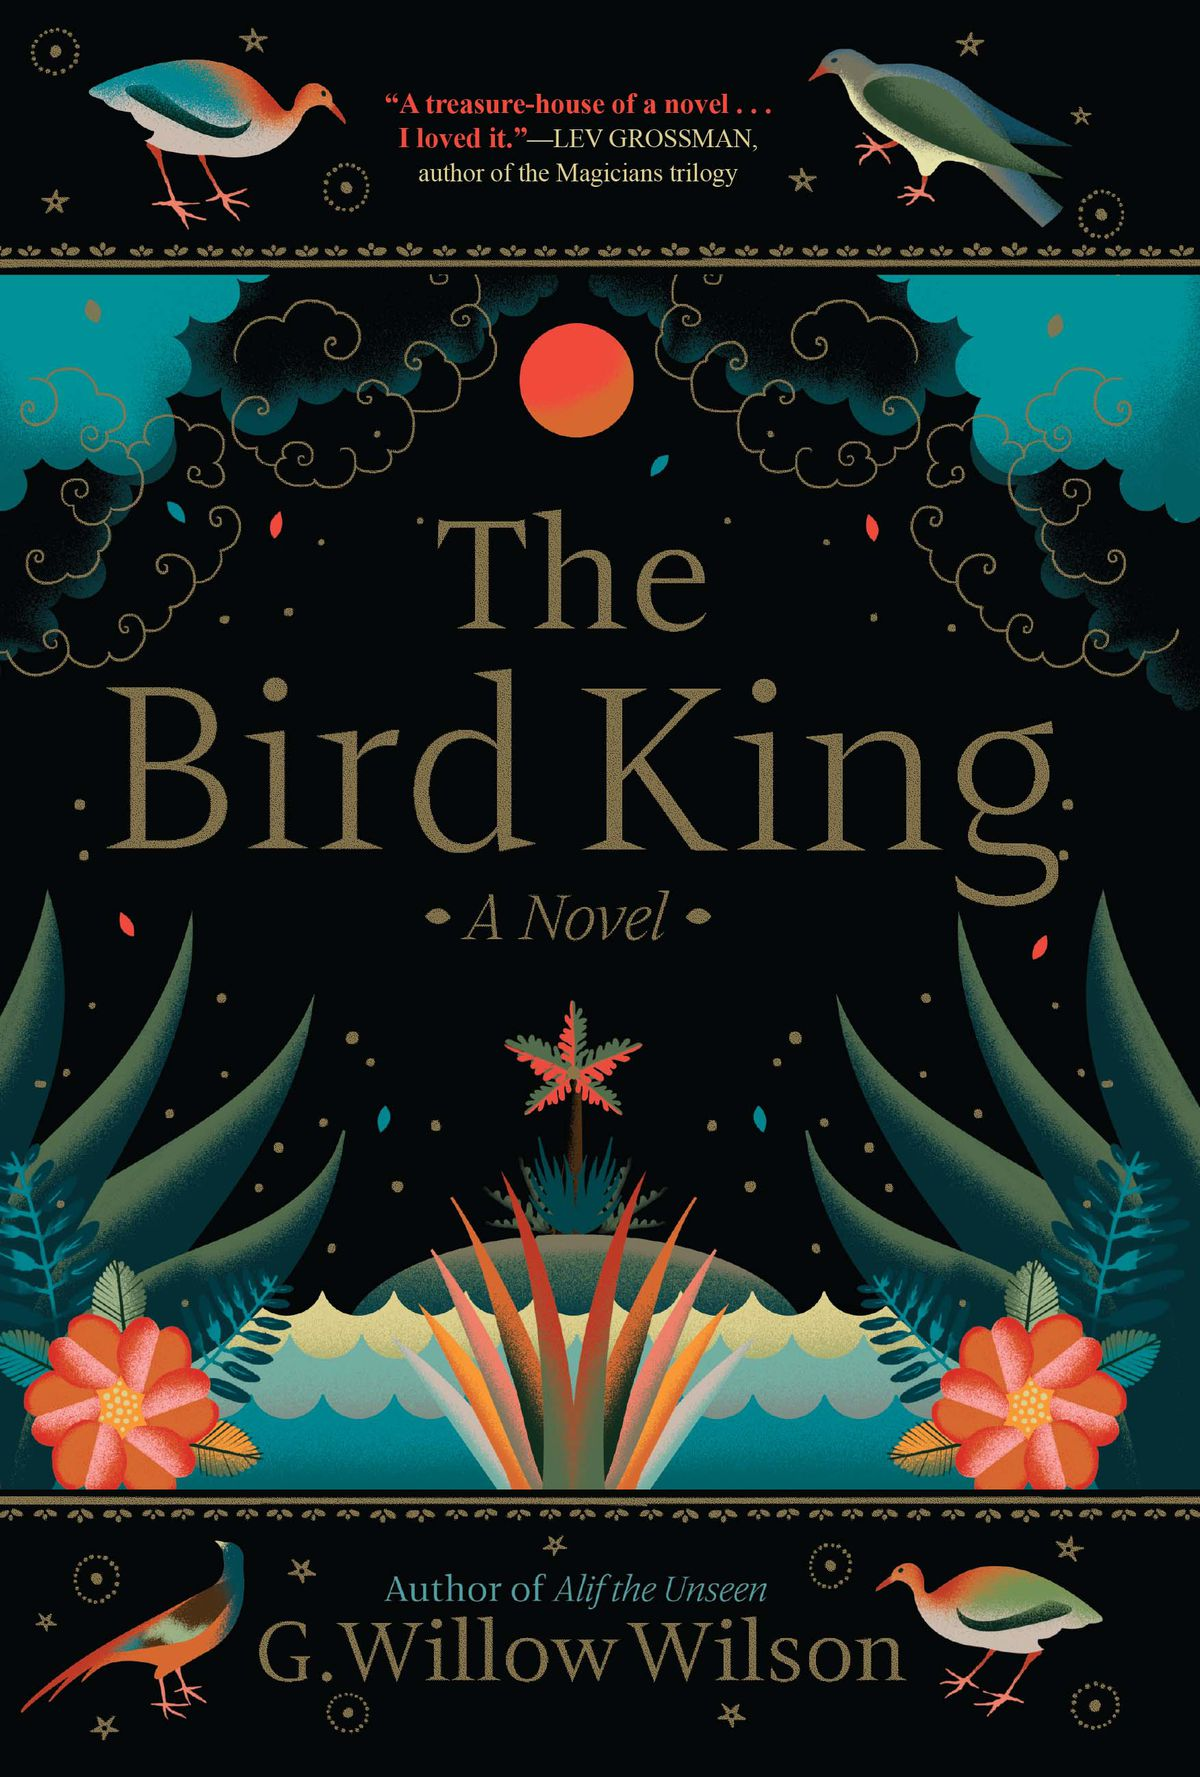 The Bird King by G. Willow Wilson cover: birds and designs swirl